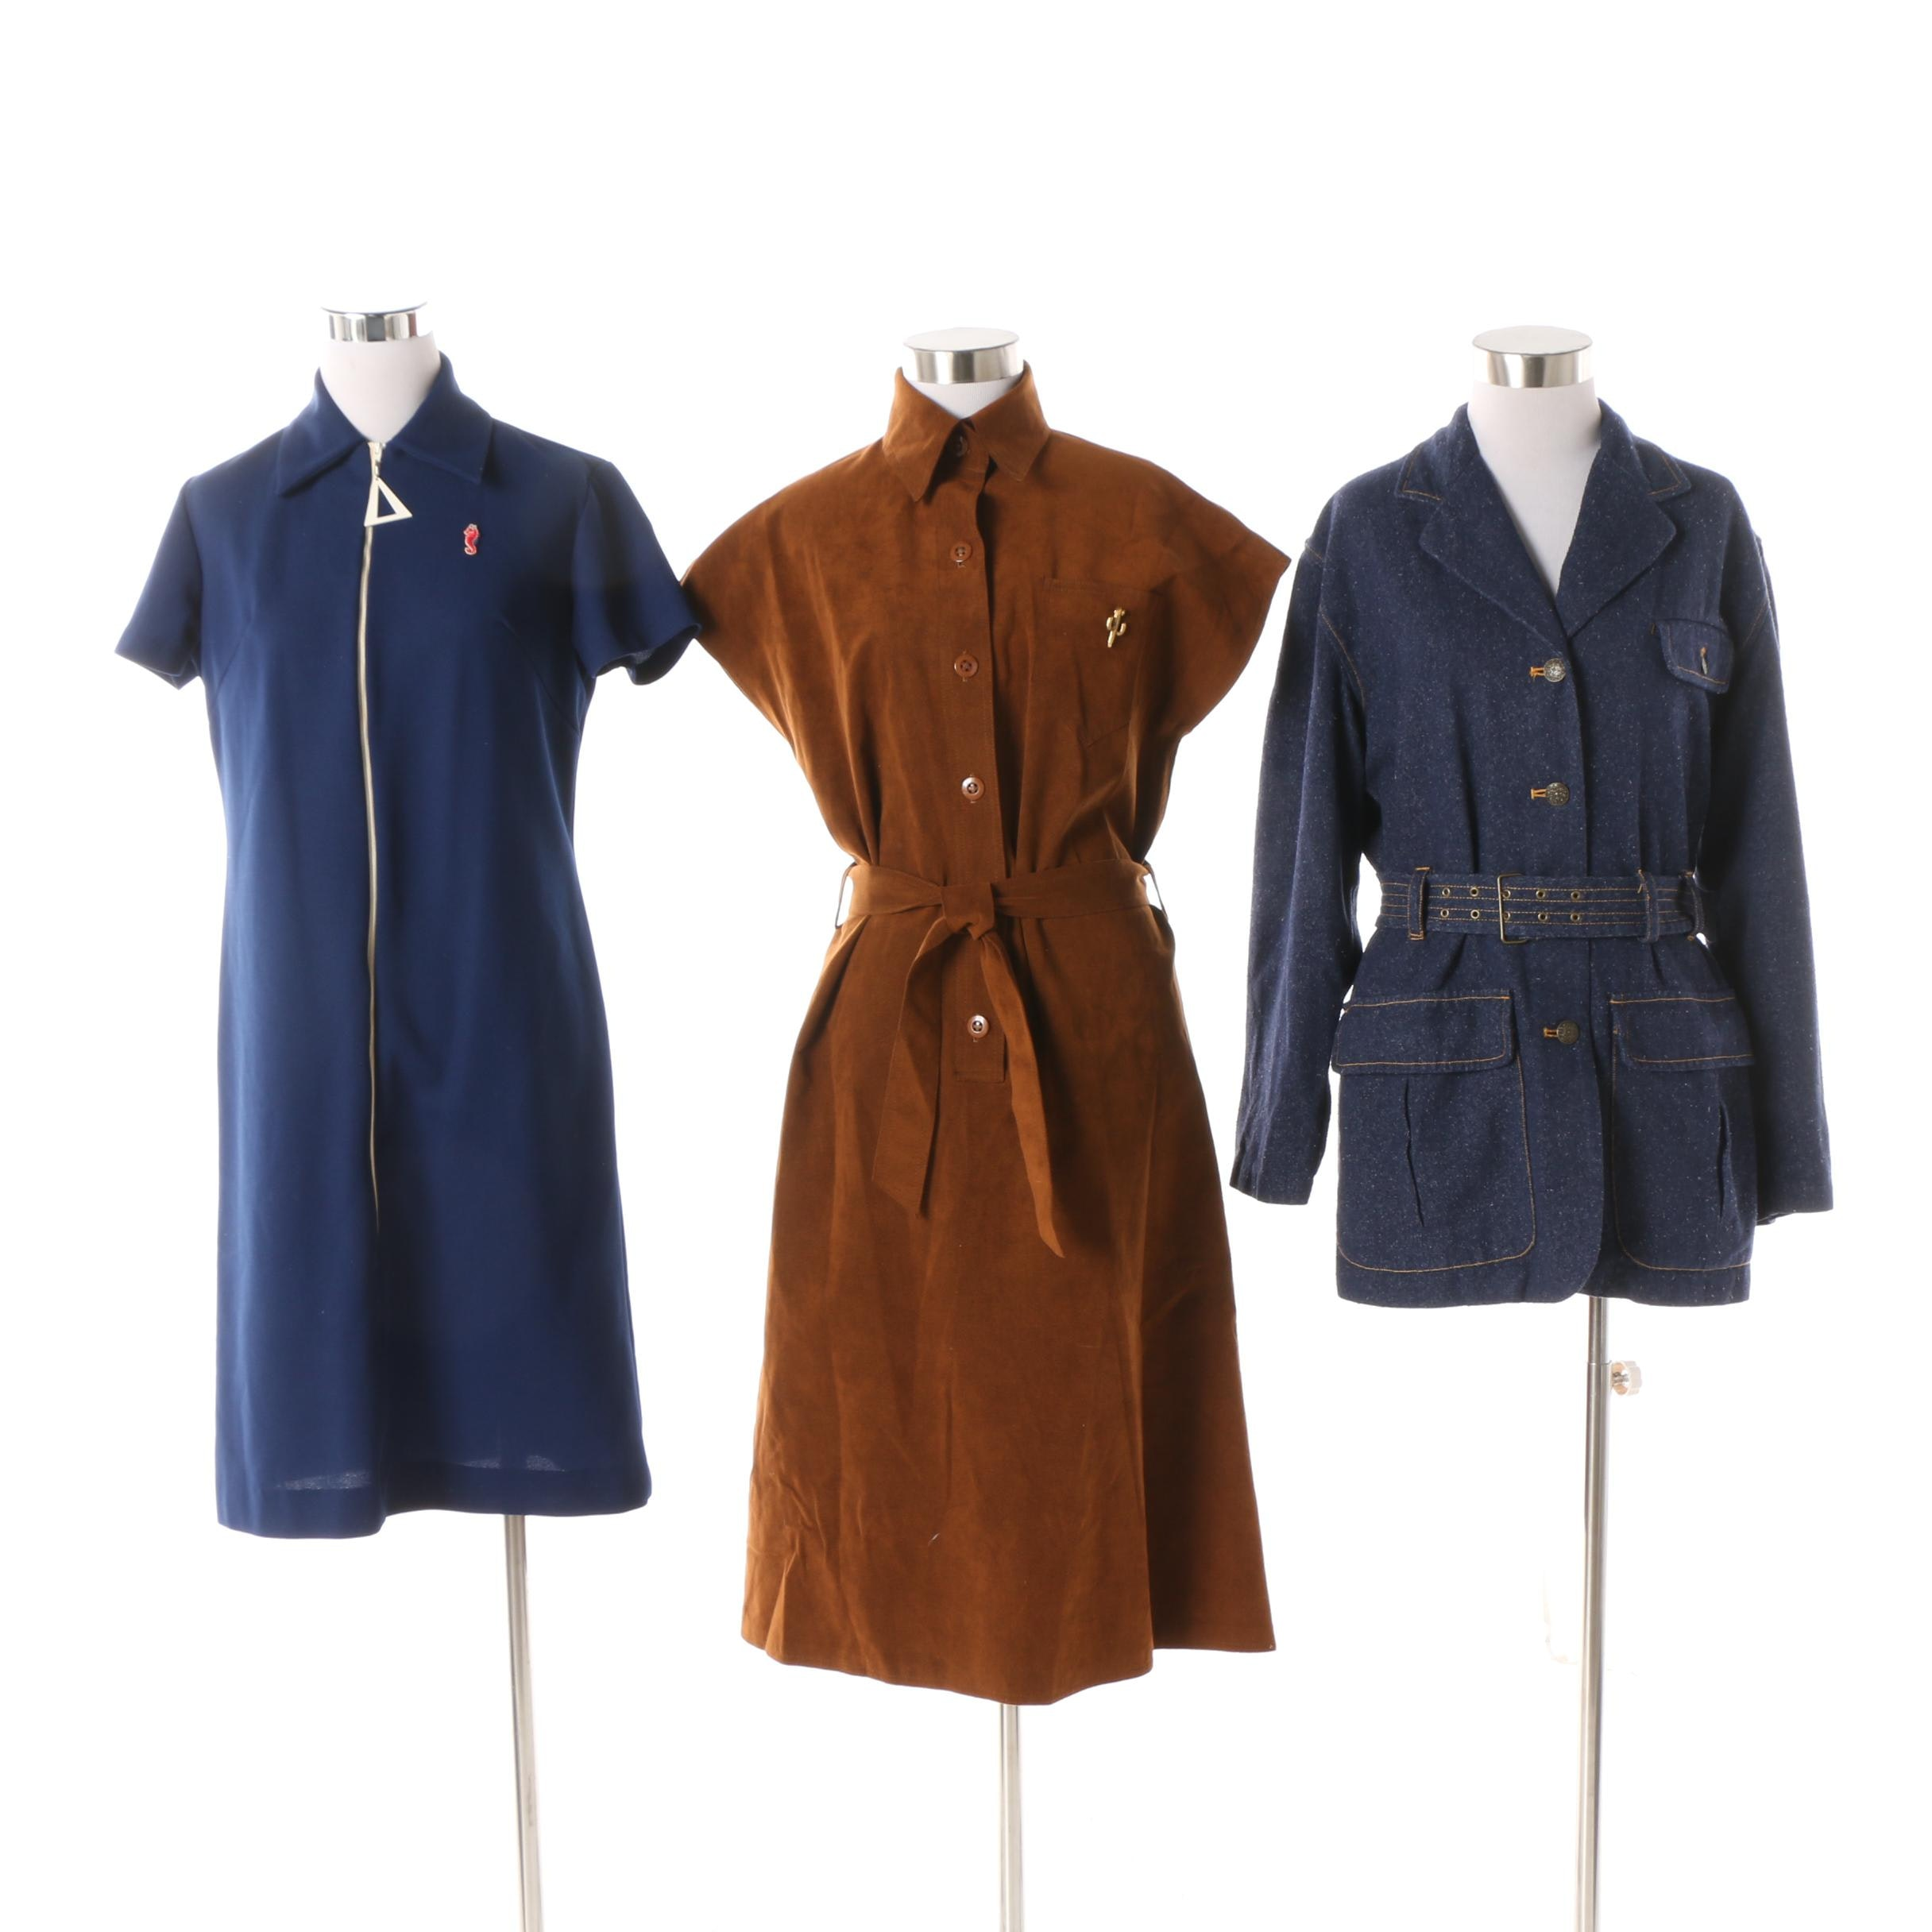 Women's Circa 1970s Vintage Shirt Dresses and Jacket including Styleworks